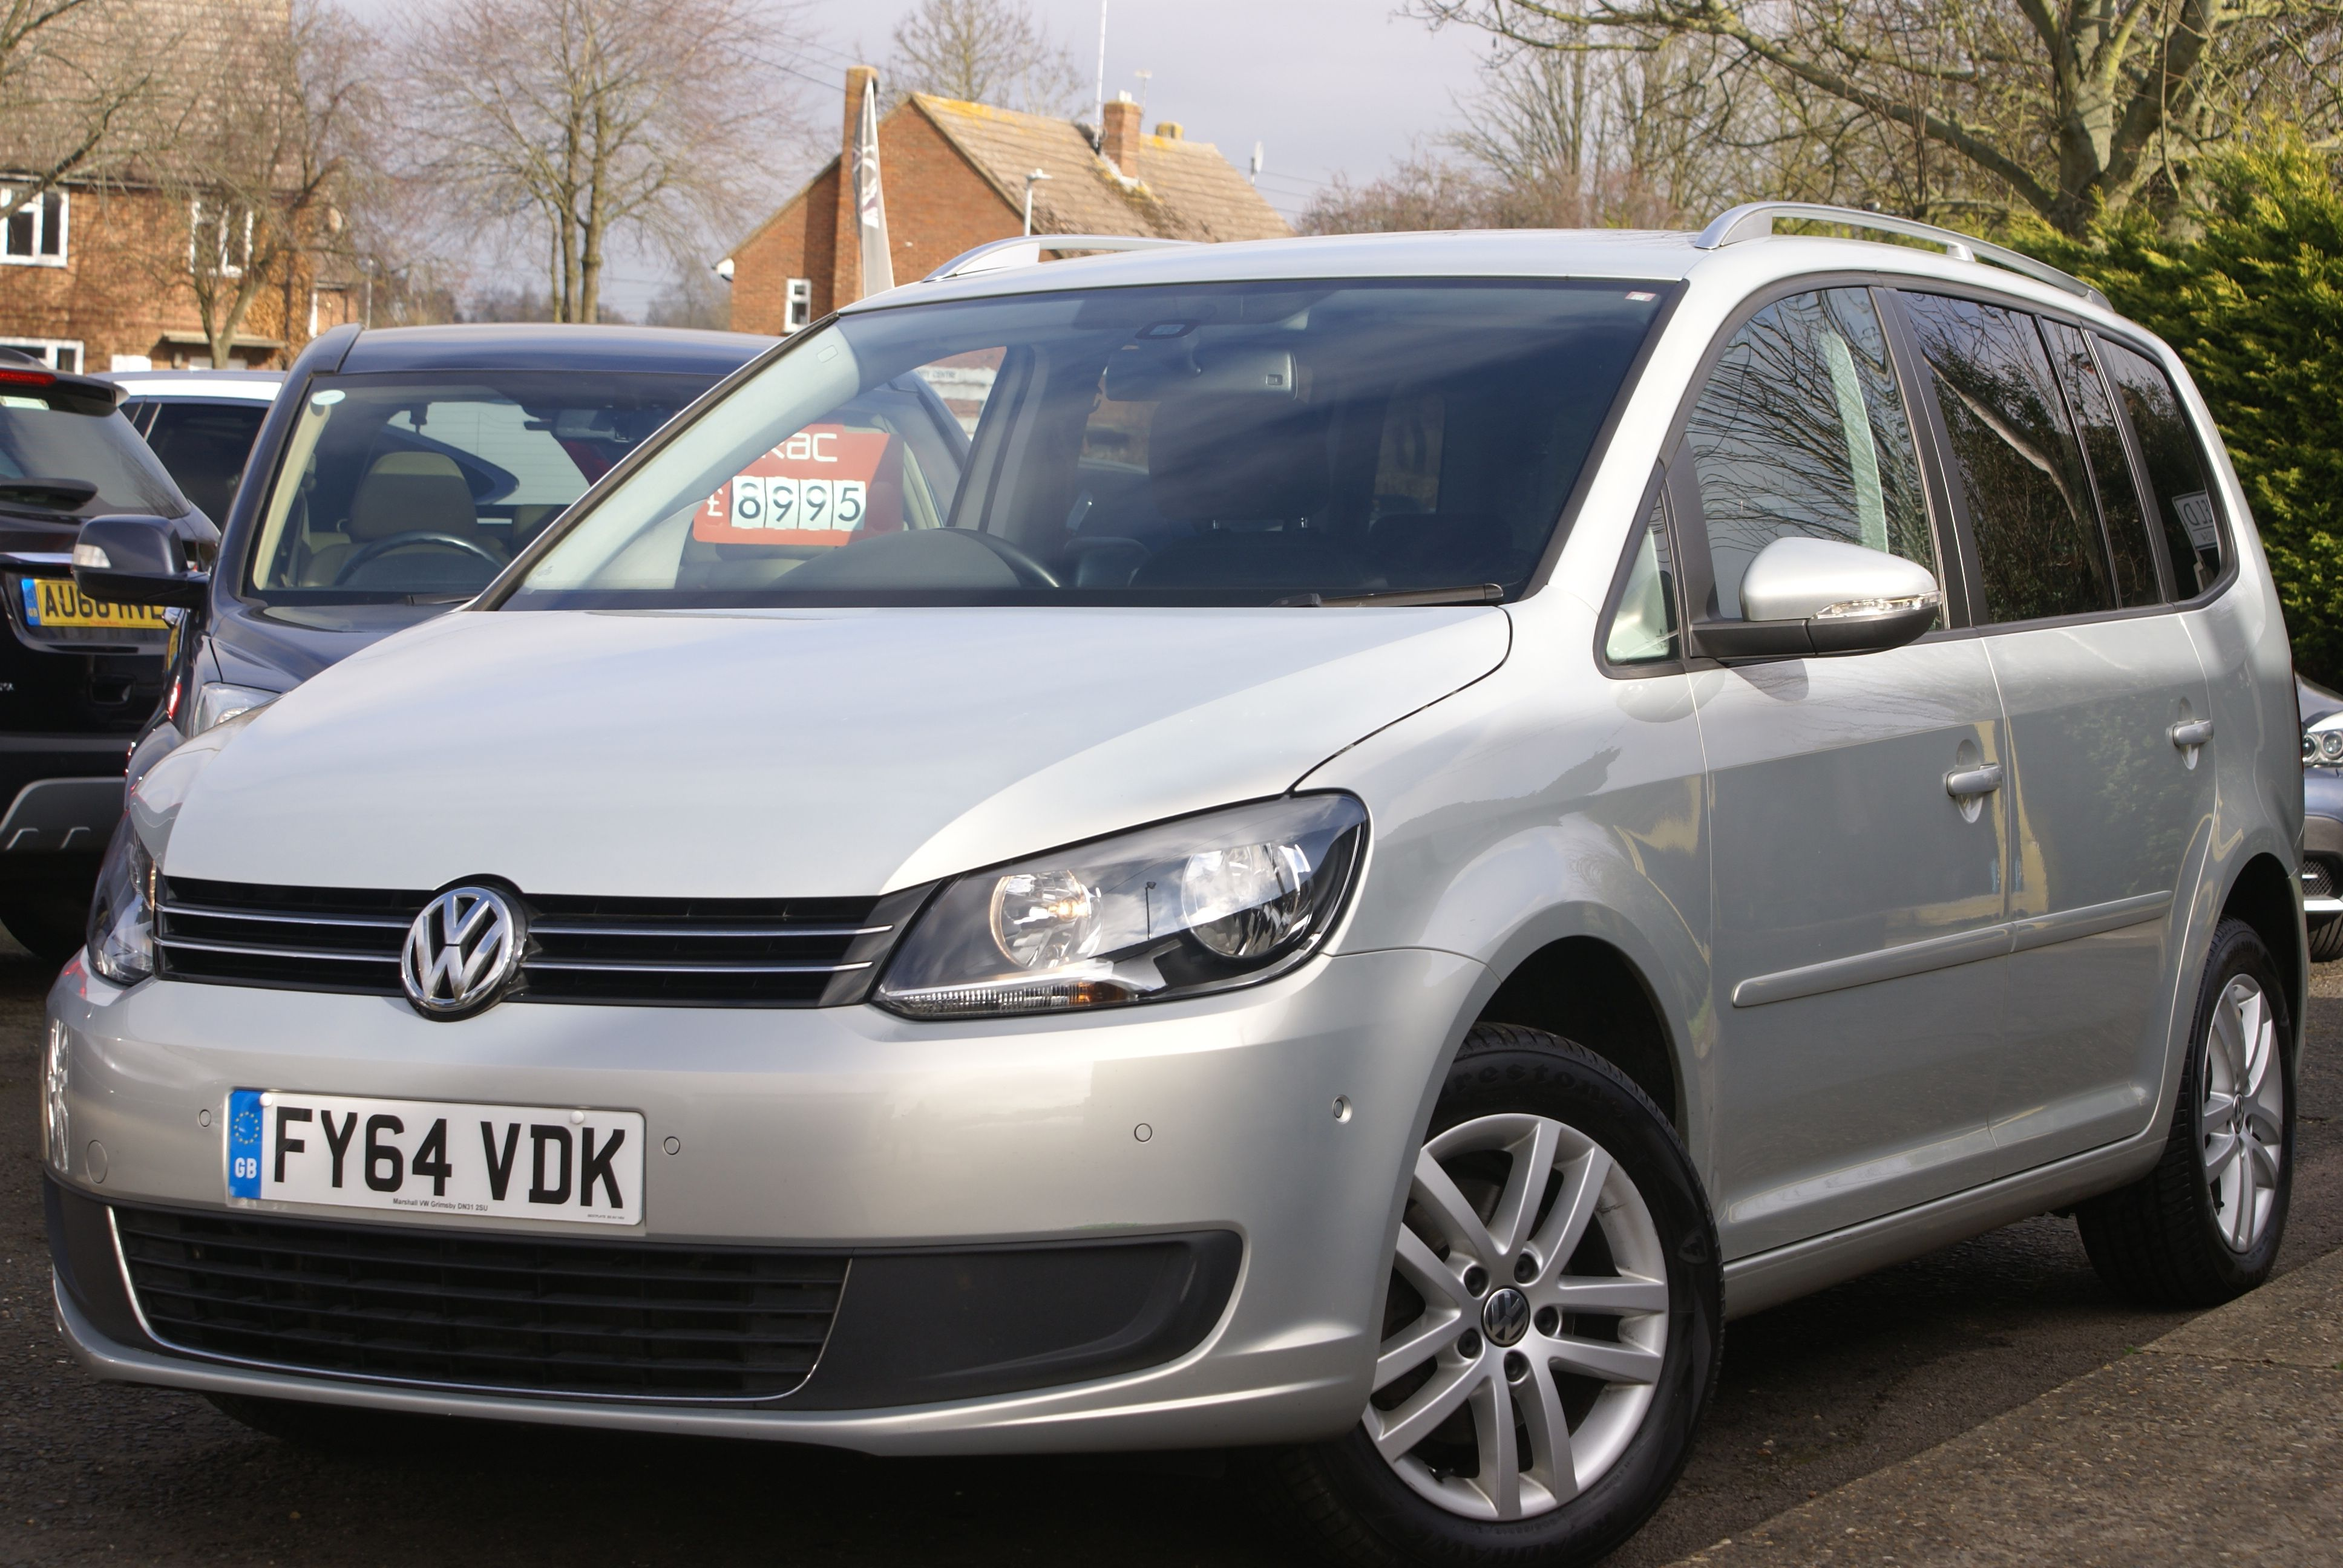 A Pure And Simple 7 Seater Mpv Brought To You By Volkswagen What More Could You Want As Long As You Re After A People Used Cars Movie Used Cars People Carrier